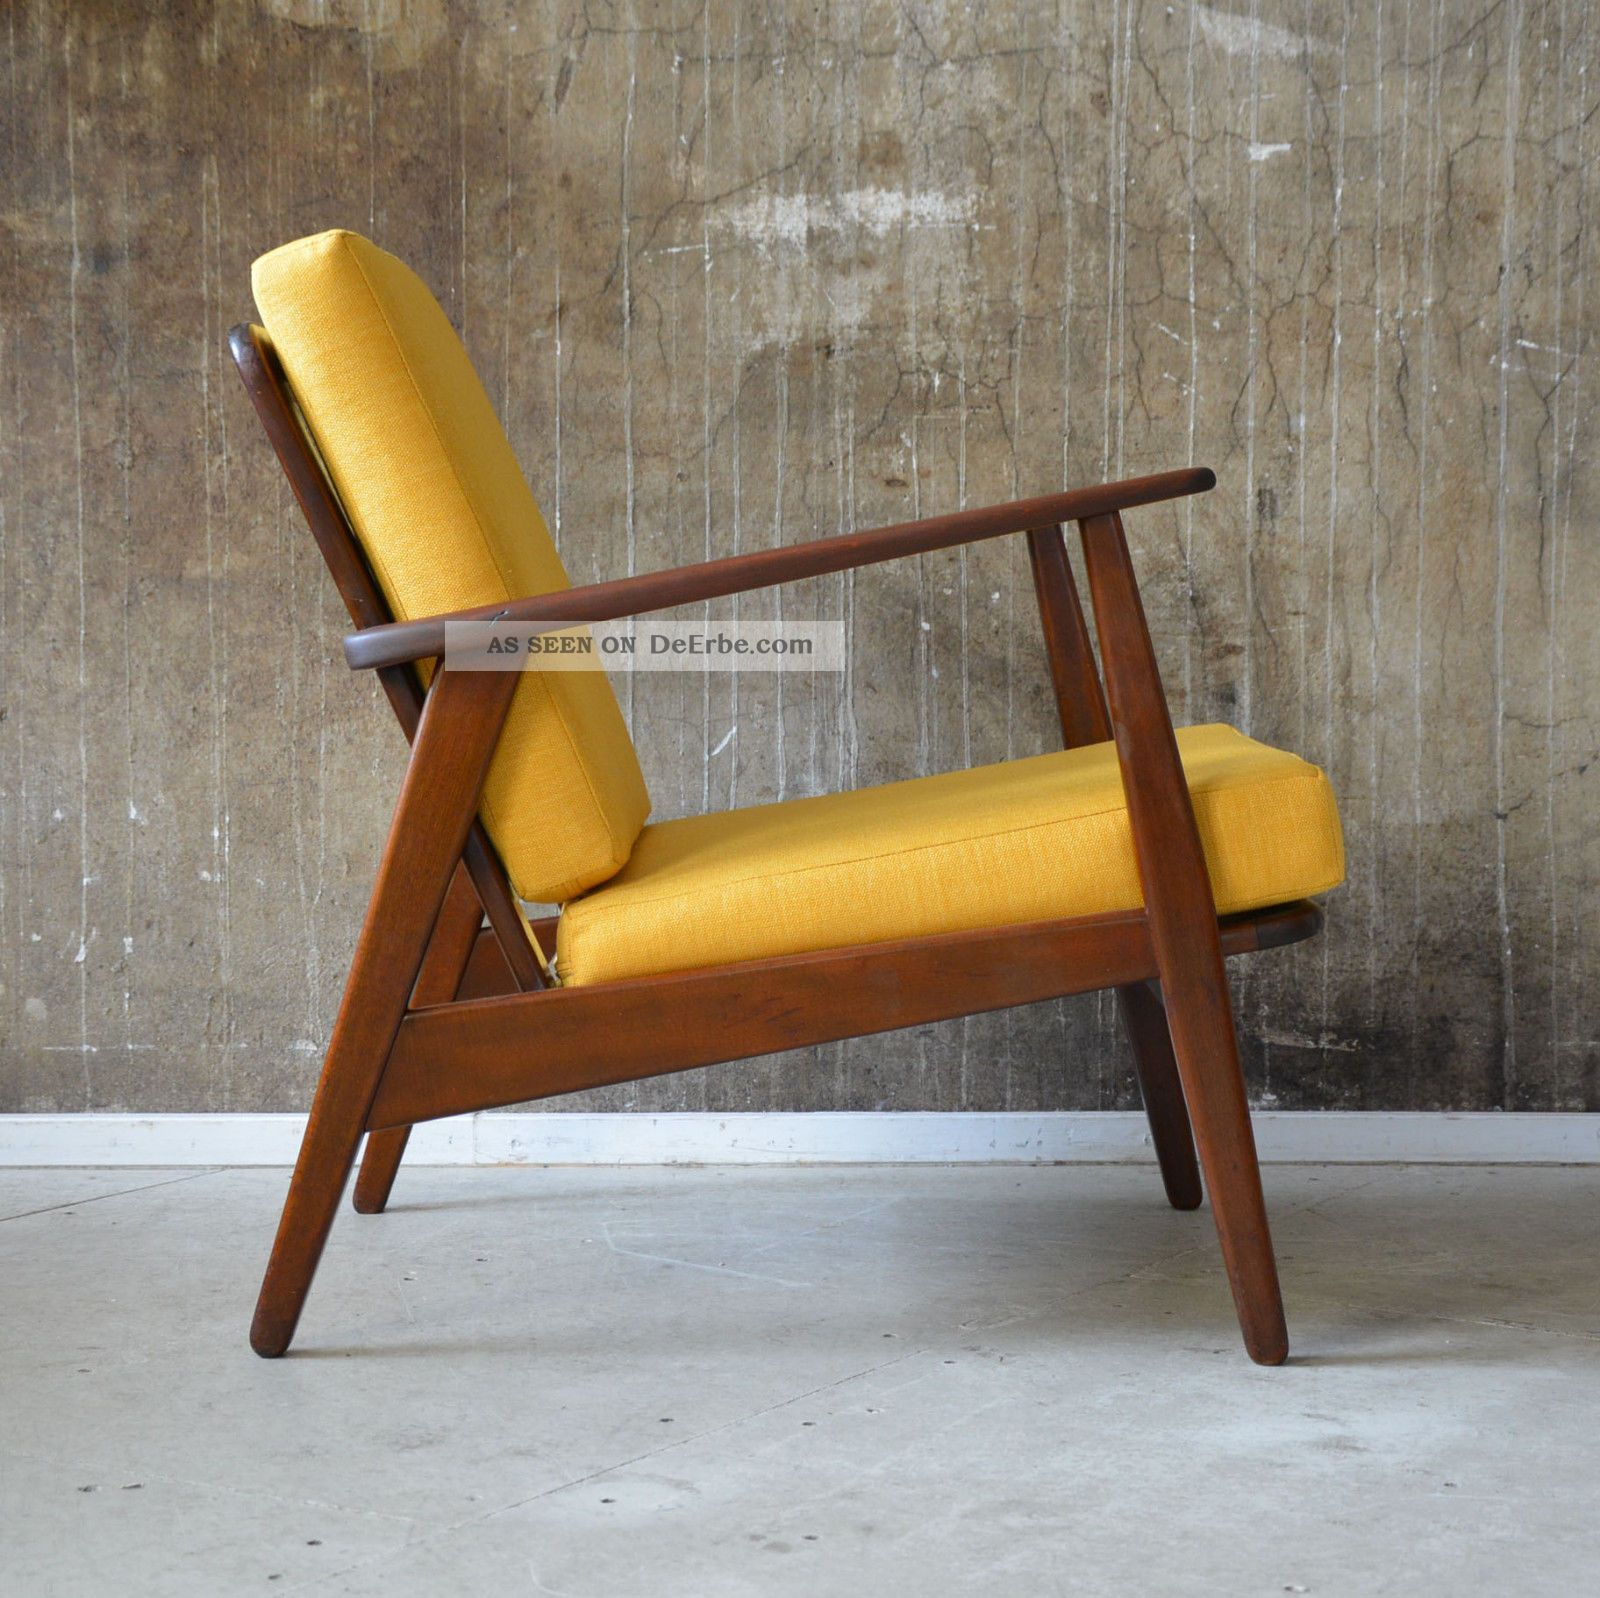 Chair Sessel 60er Teak Sessel Danish Design 60s Easy Chair Vintage Midcentury